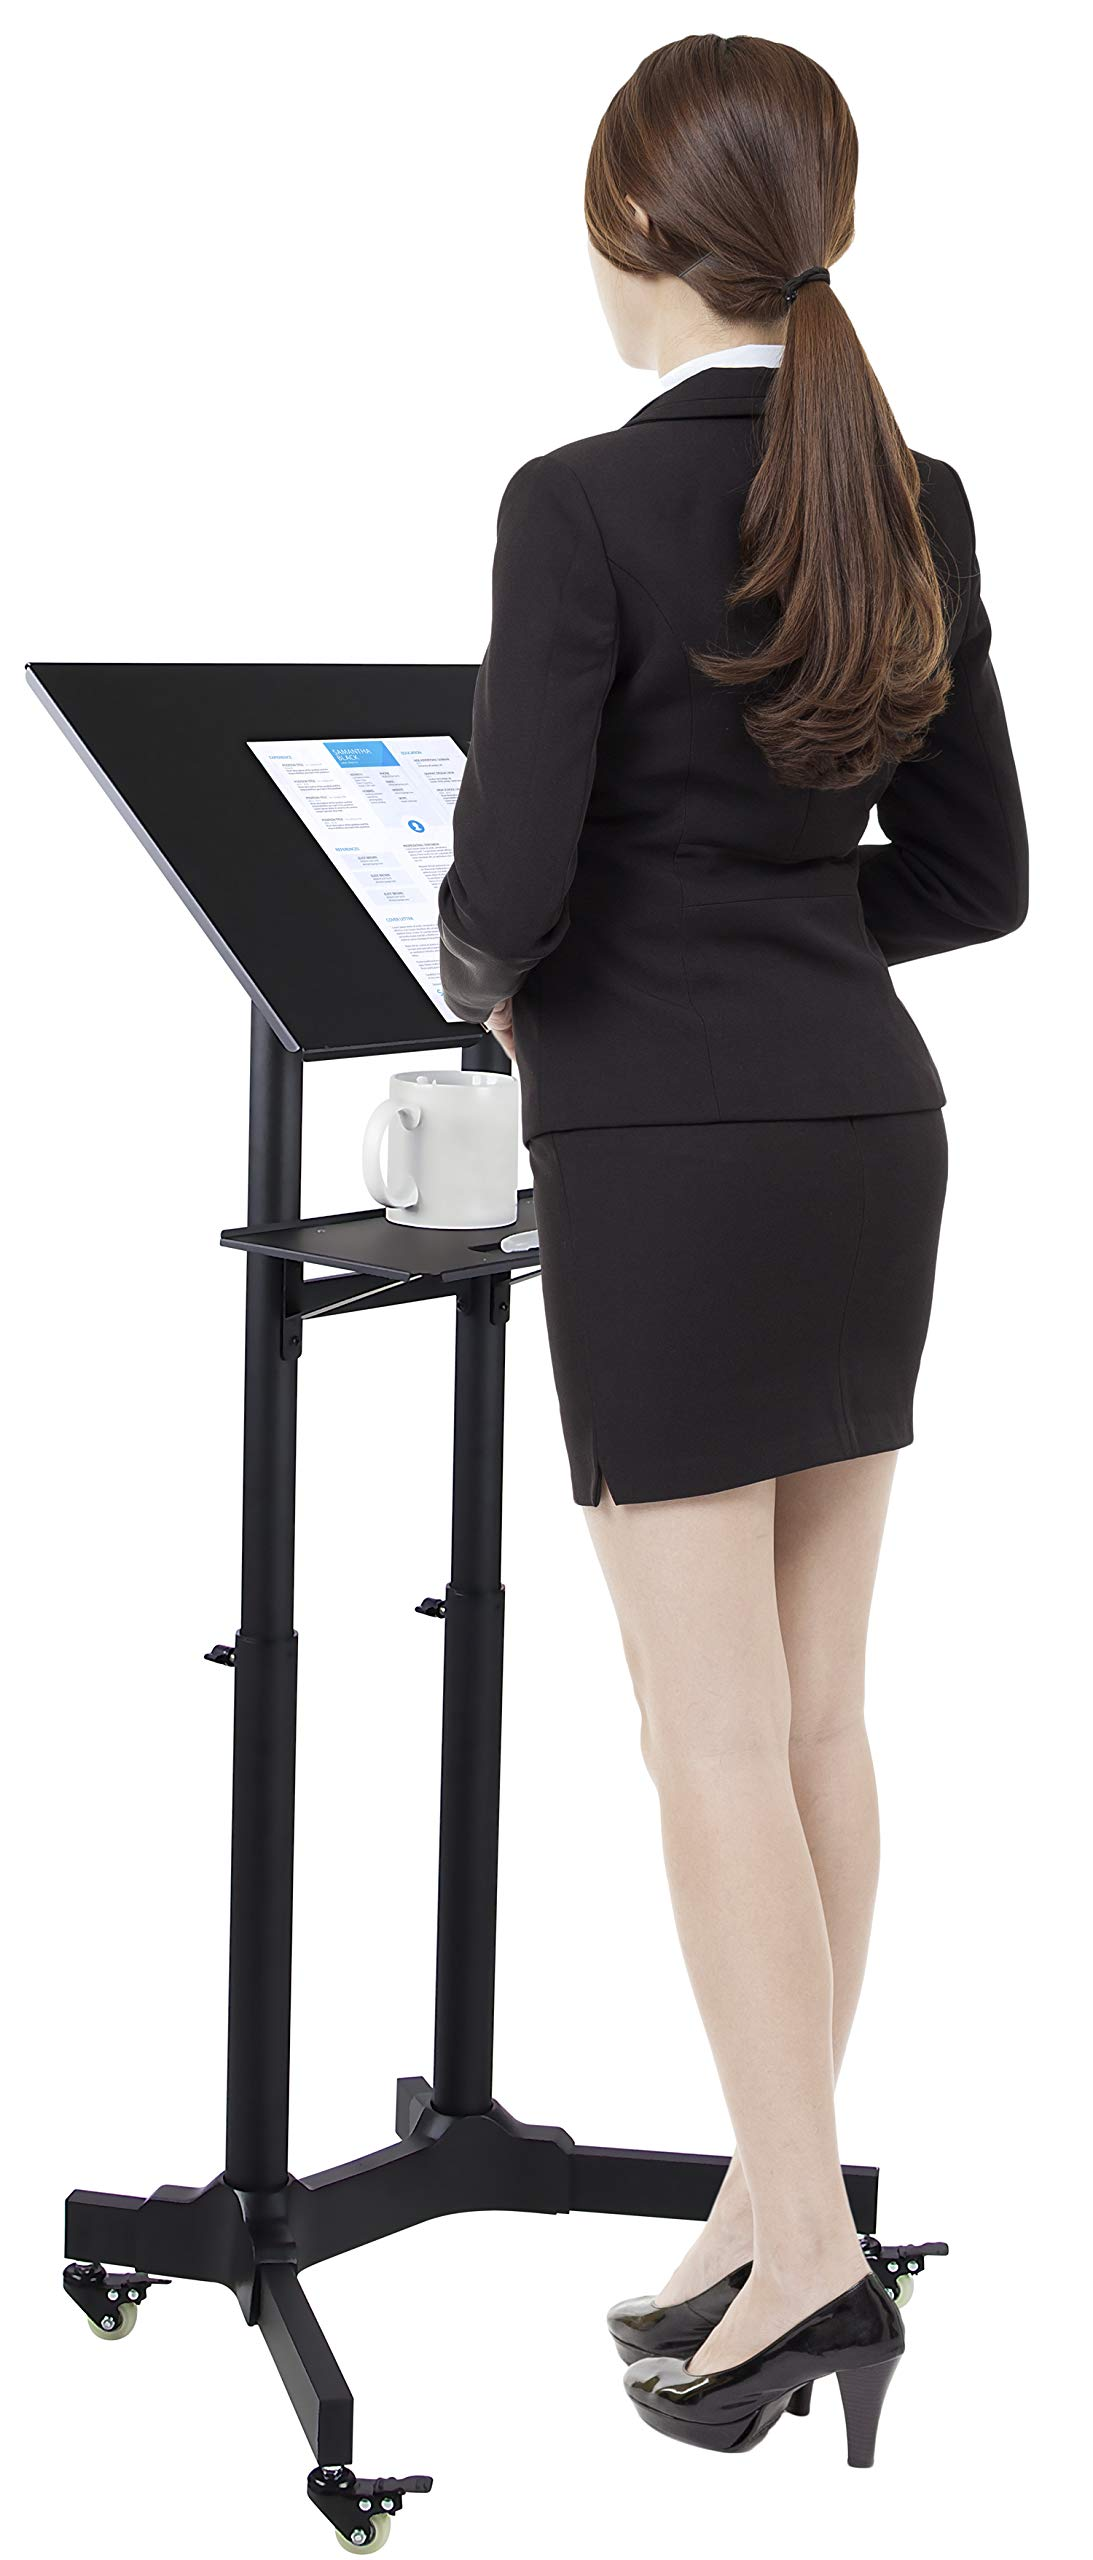 Mount-It! Mobile Standing Height Desk, Portable Podium and Rolling Presentation Lectern, Laptop Stand Up Desk with Caster Wheels (MI-7971) by Mount-It!